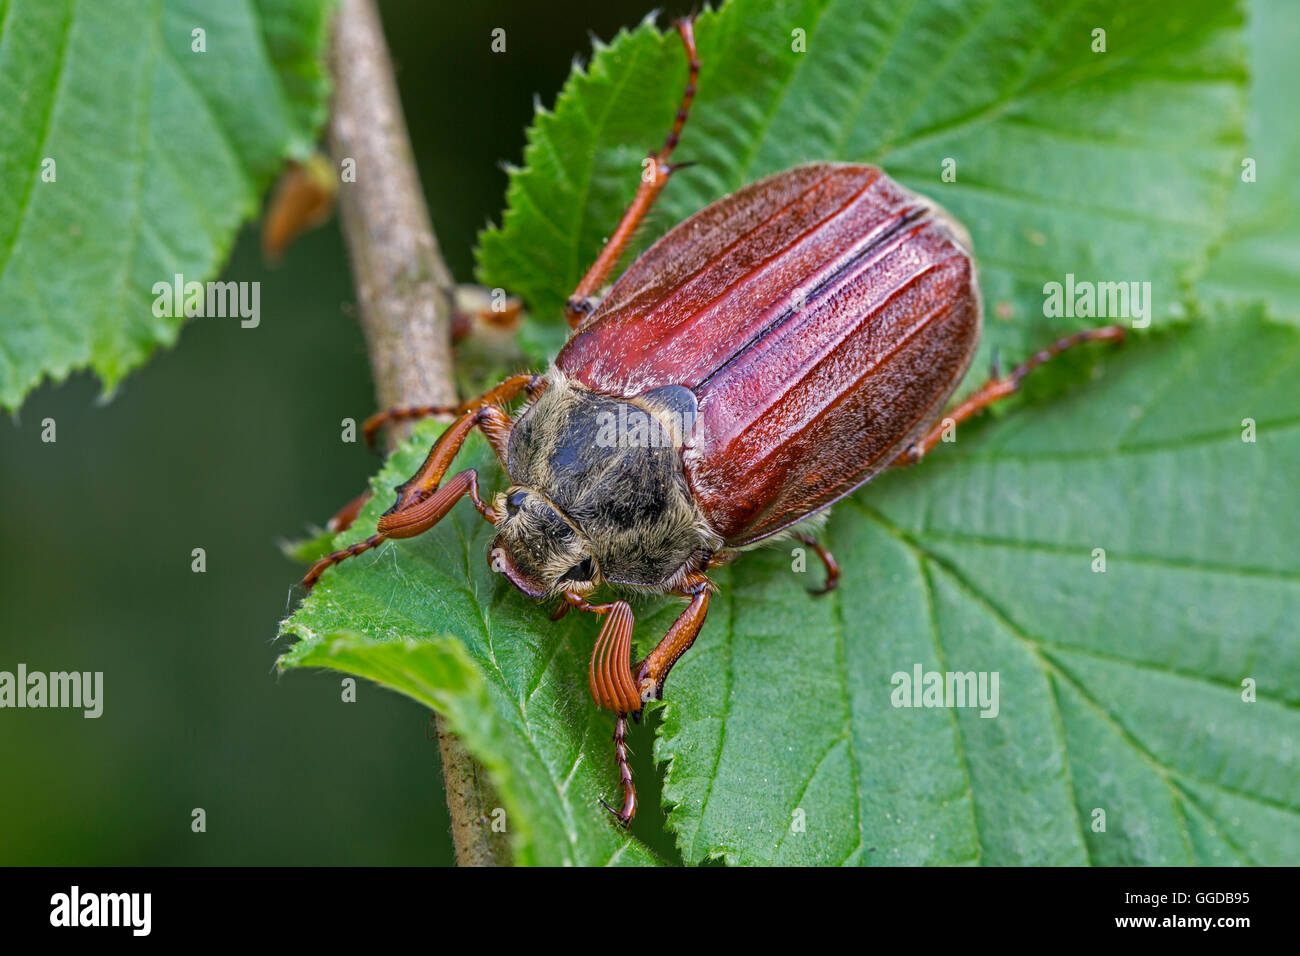 Common cockchafer / May bug (Melolontha melolontha) on leaf Stock Photo